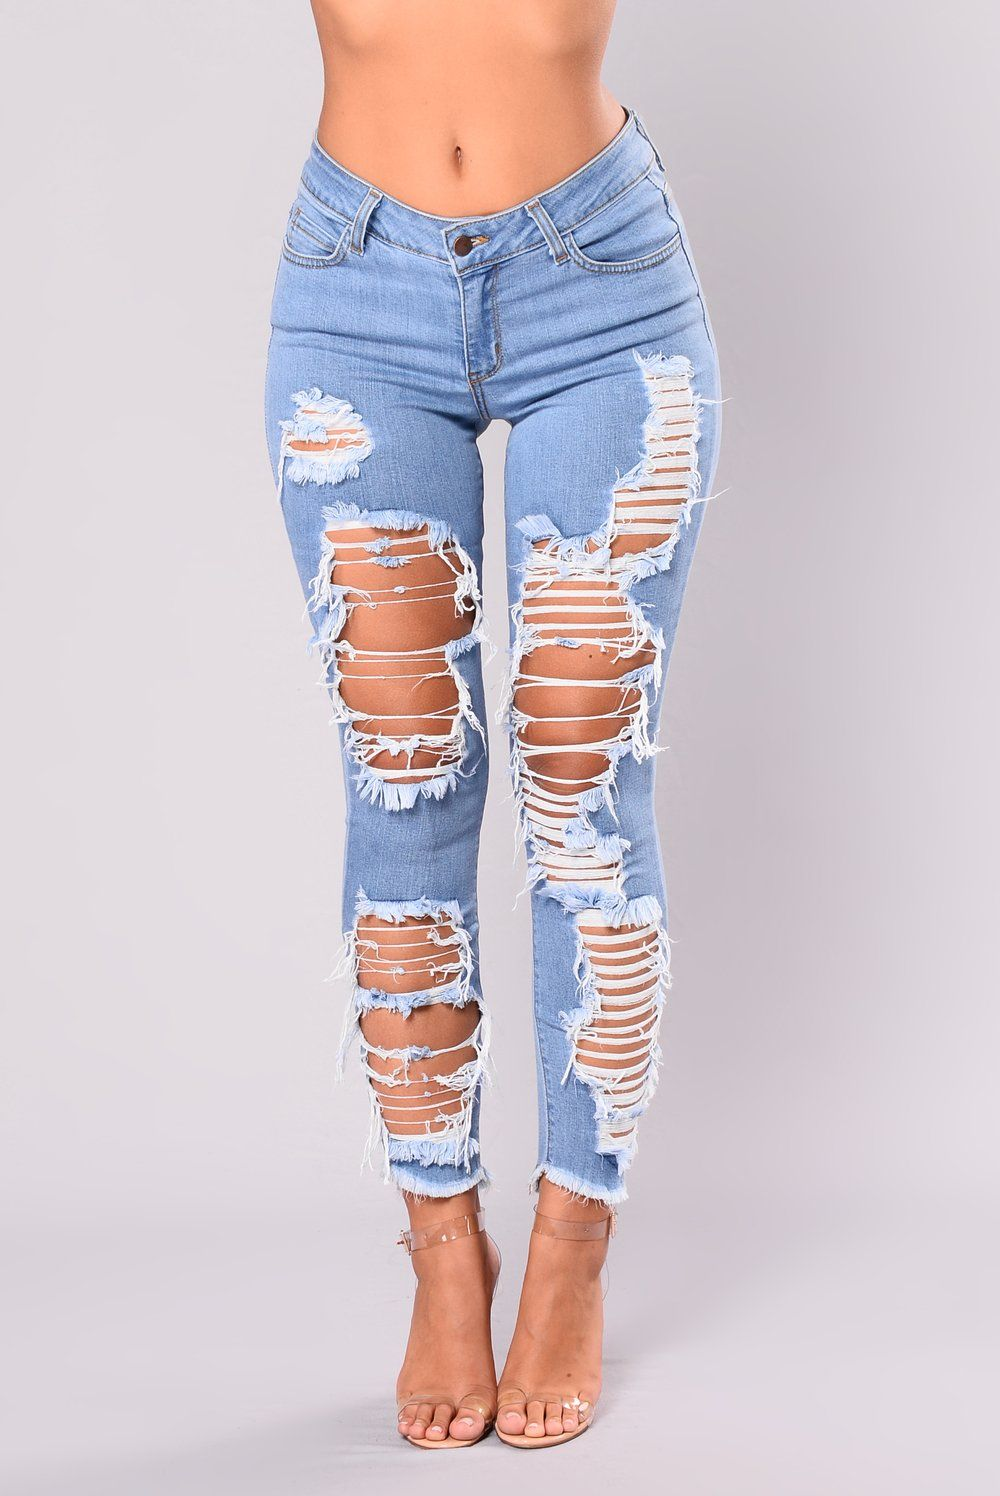 8624bbb10f1 Cassy Distress Jeans - Light in 2019